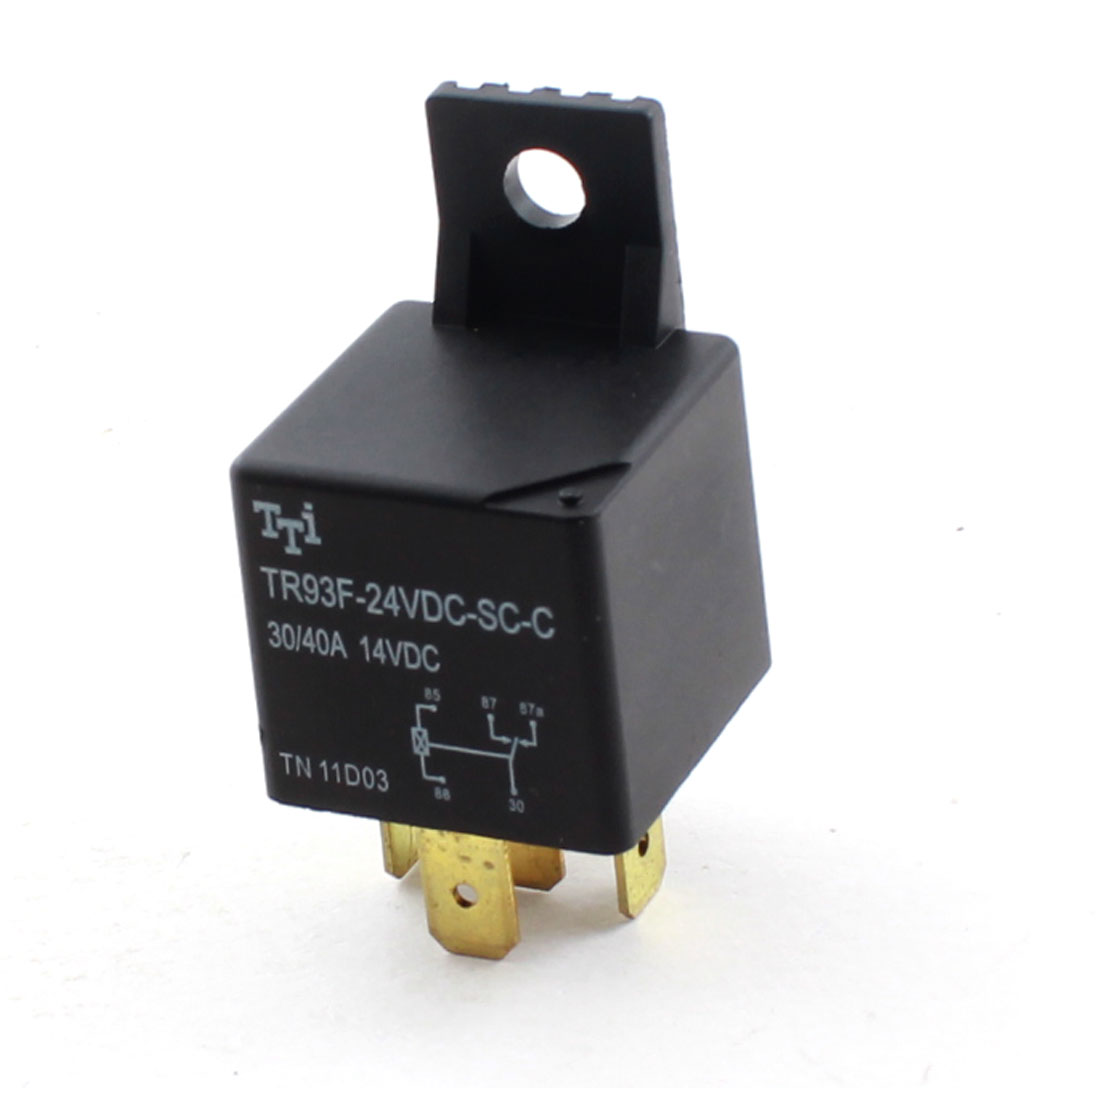 Car Auto DC24V Coil Voltage Single Pole Double Throw 1NO 1NC 5Pin Black Plastic Housing General Purpose Power Relay